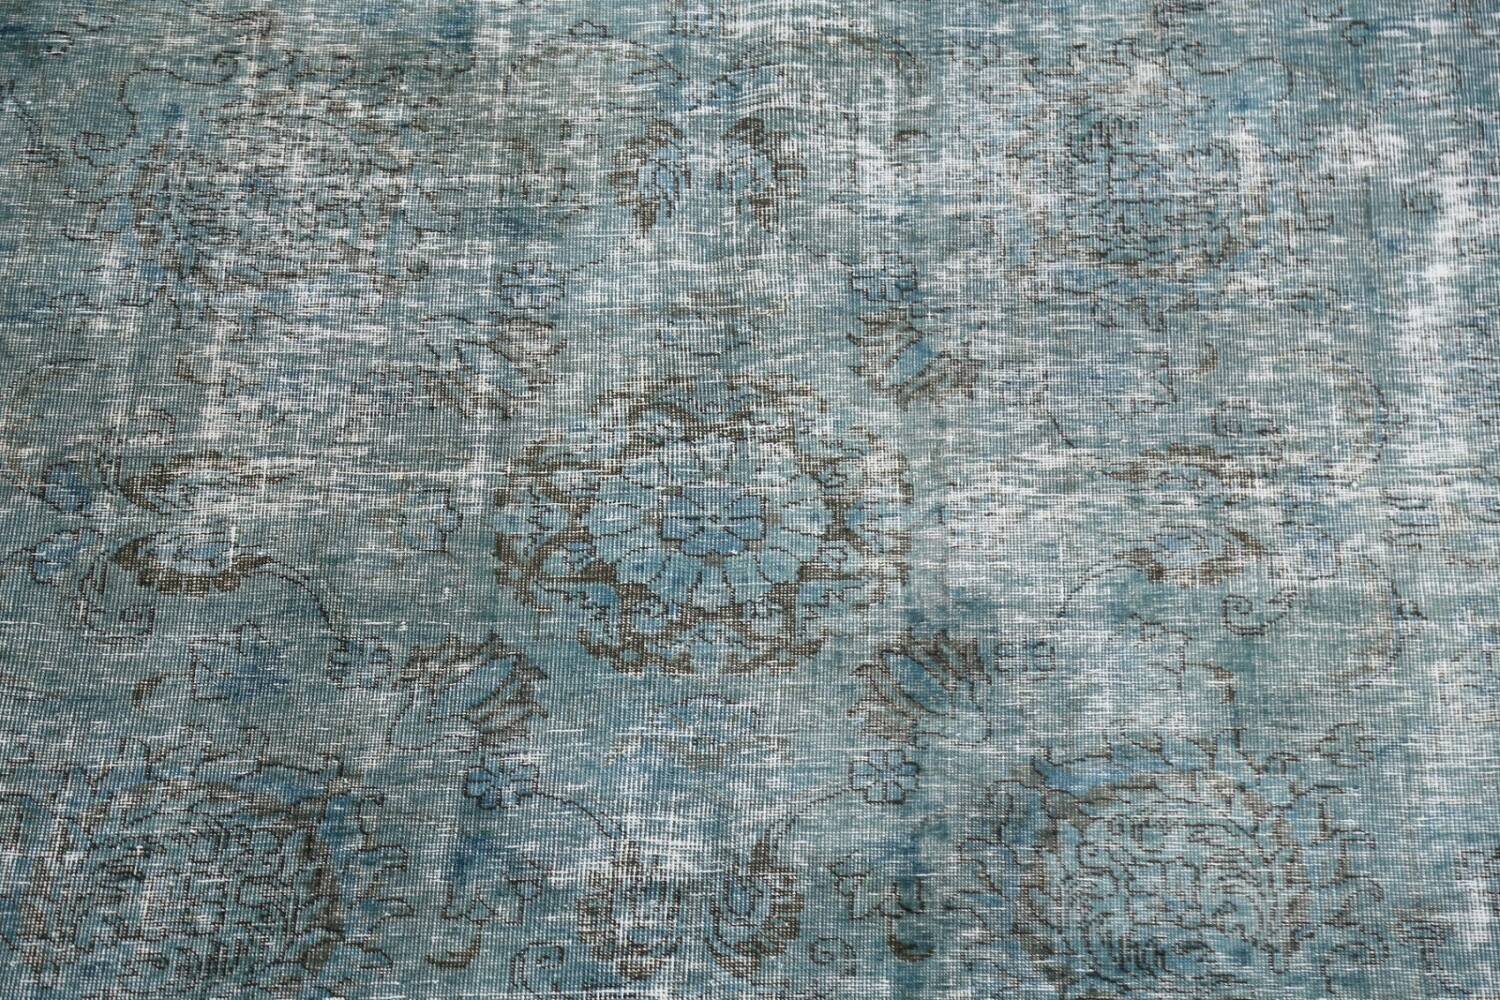 Distressed Over-dyed Tabriz Persian Area Rug 8x8 Square image 4